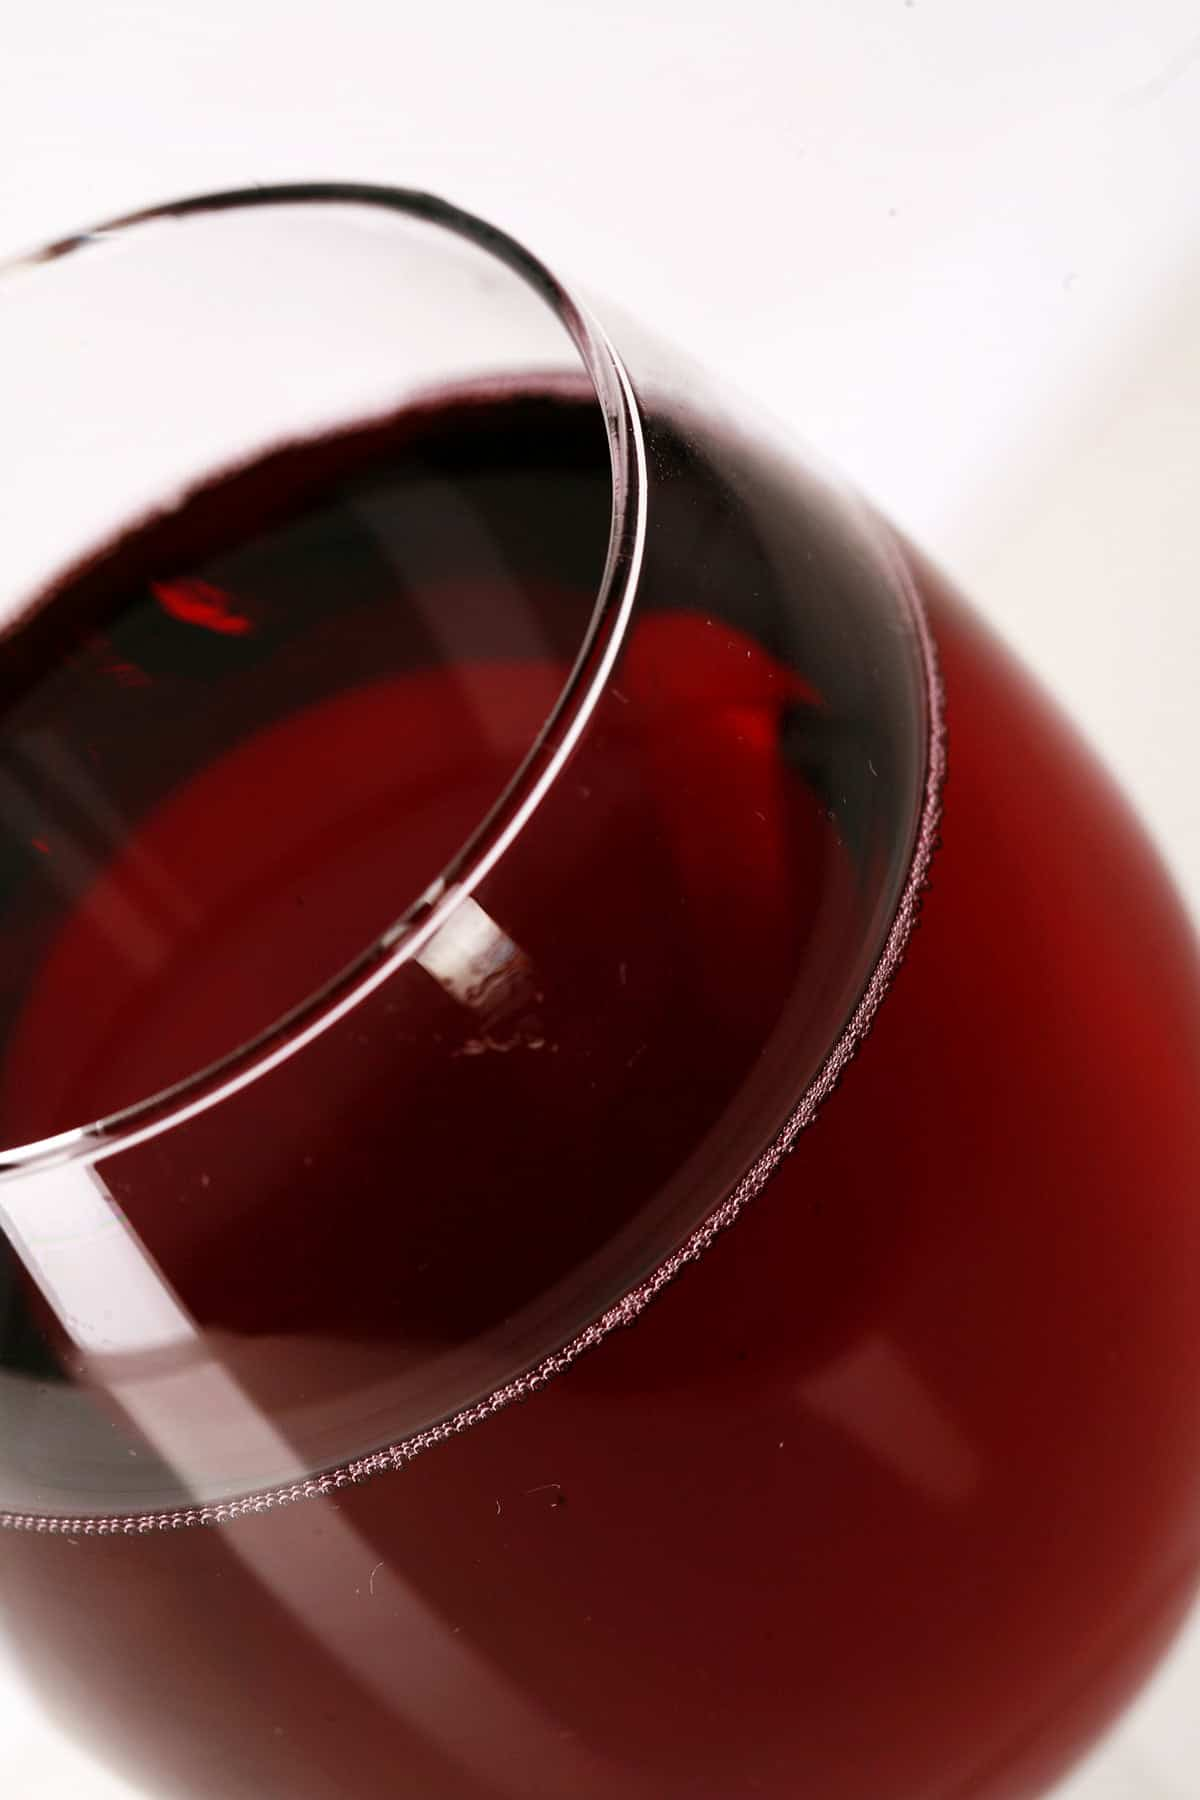 Close up view of a glass of homemade cherry wine.